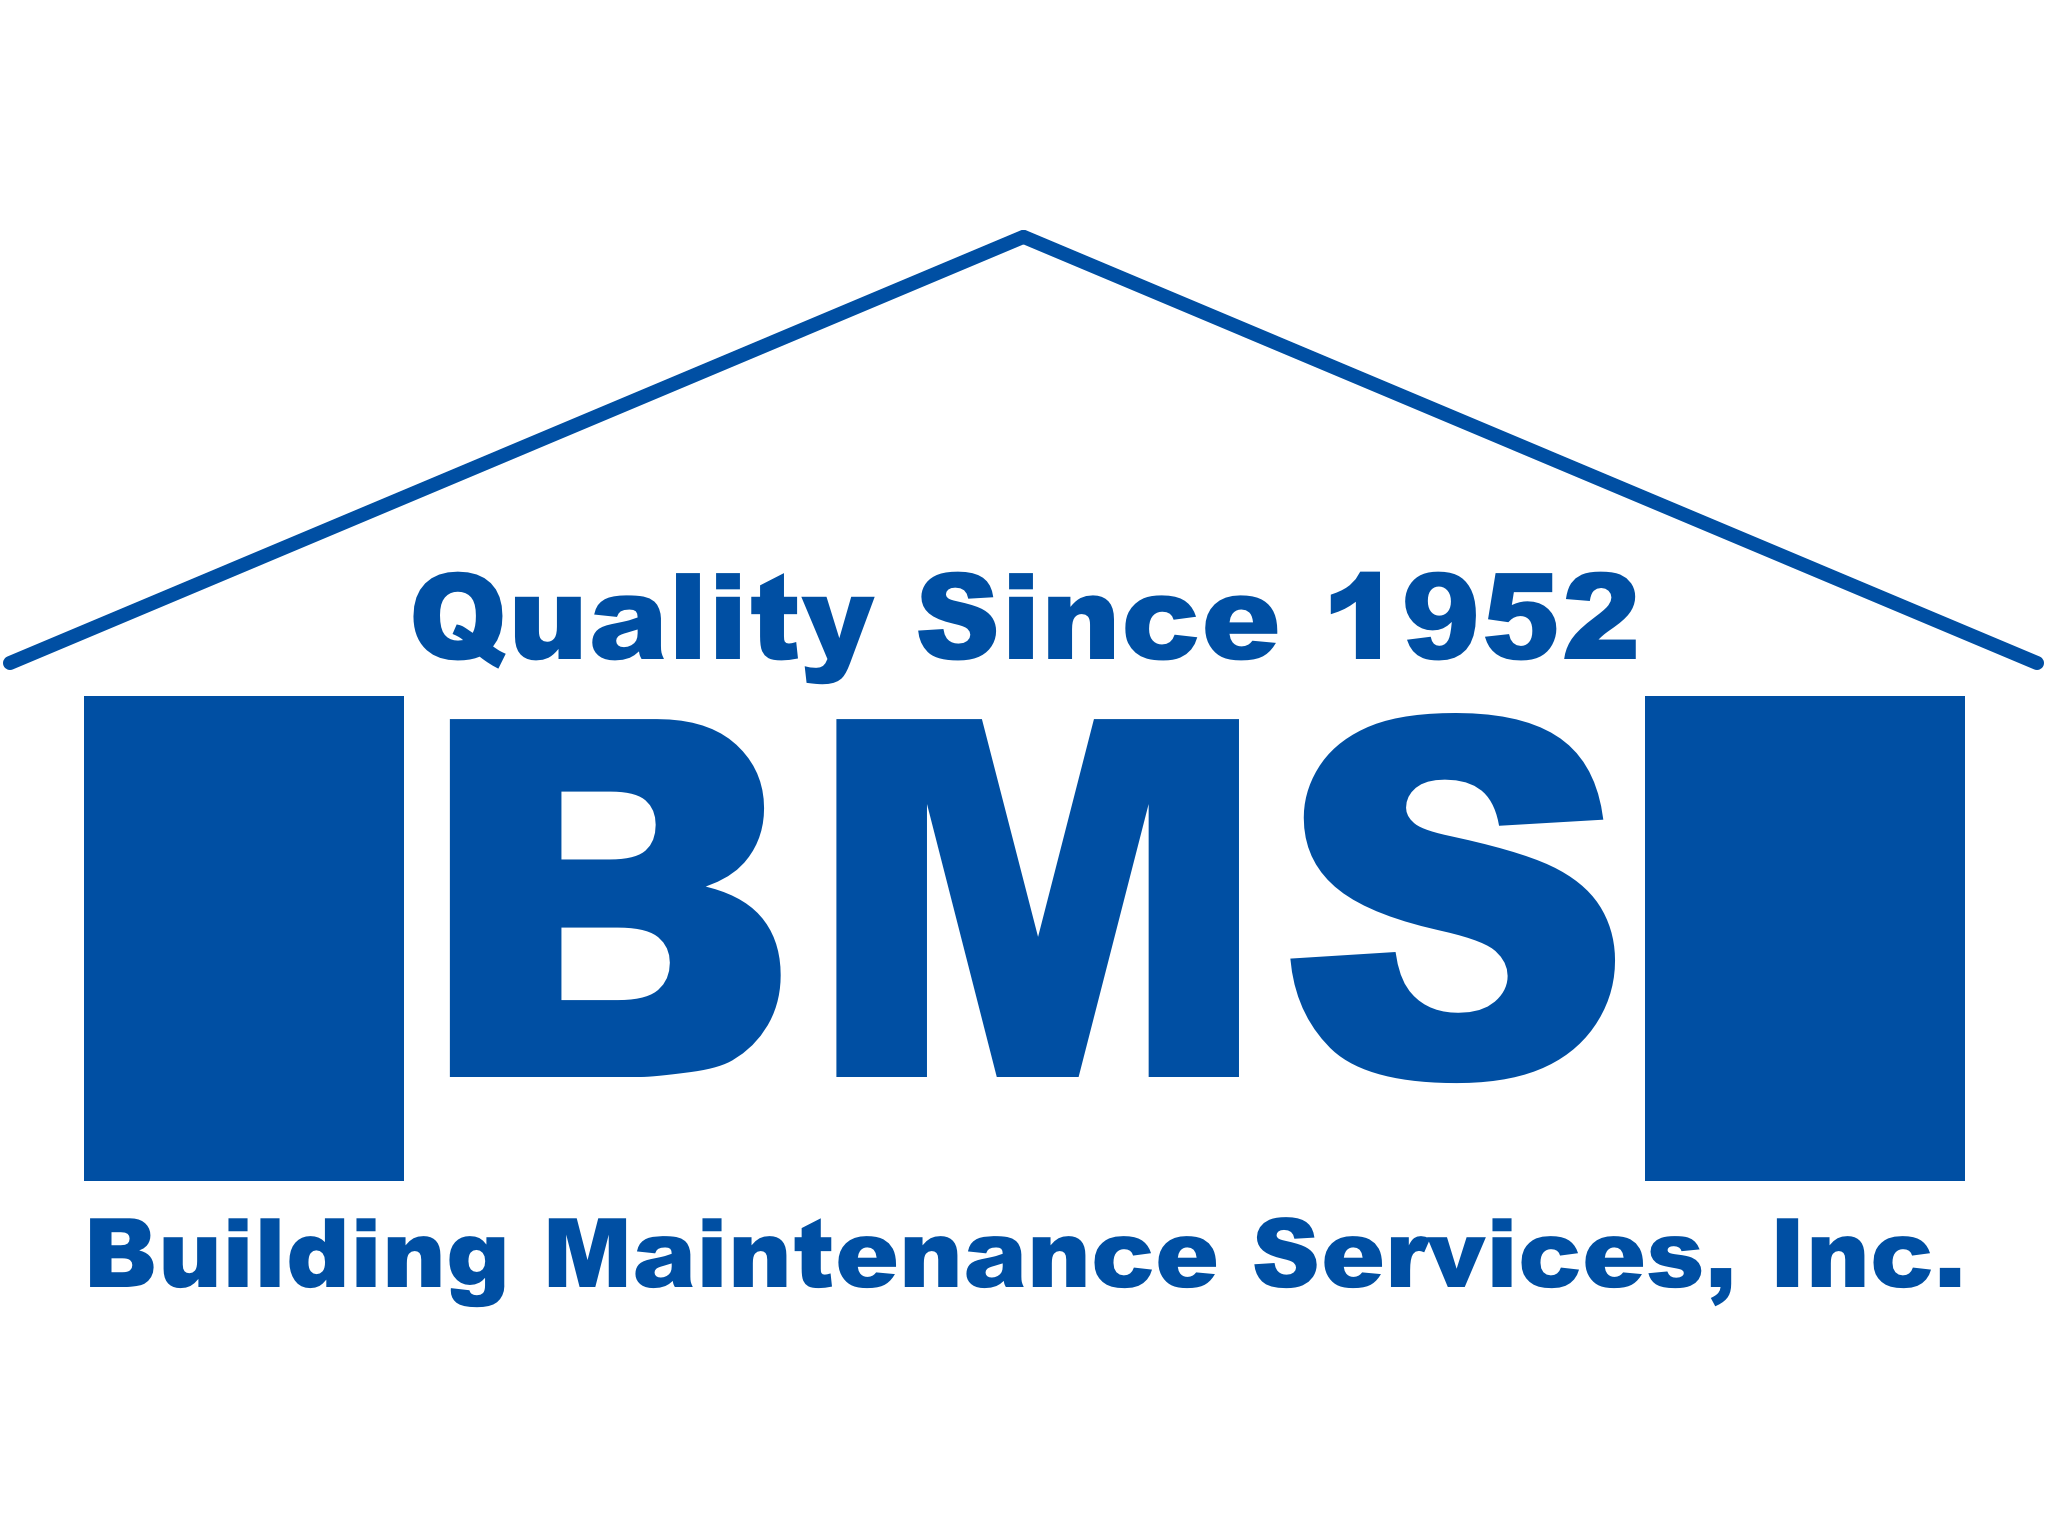 Building Maintenance Services, Inc.